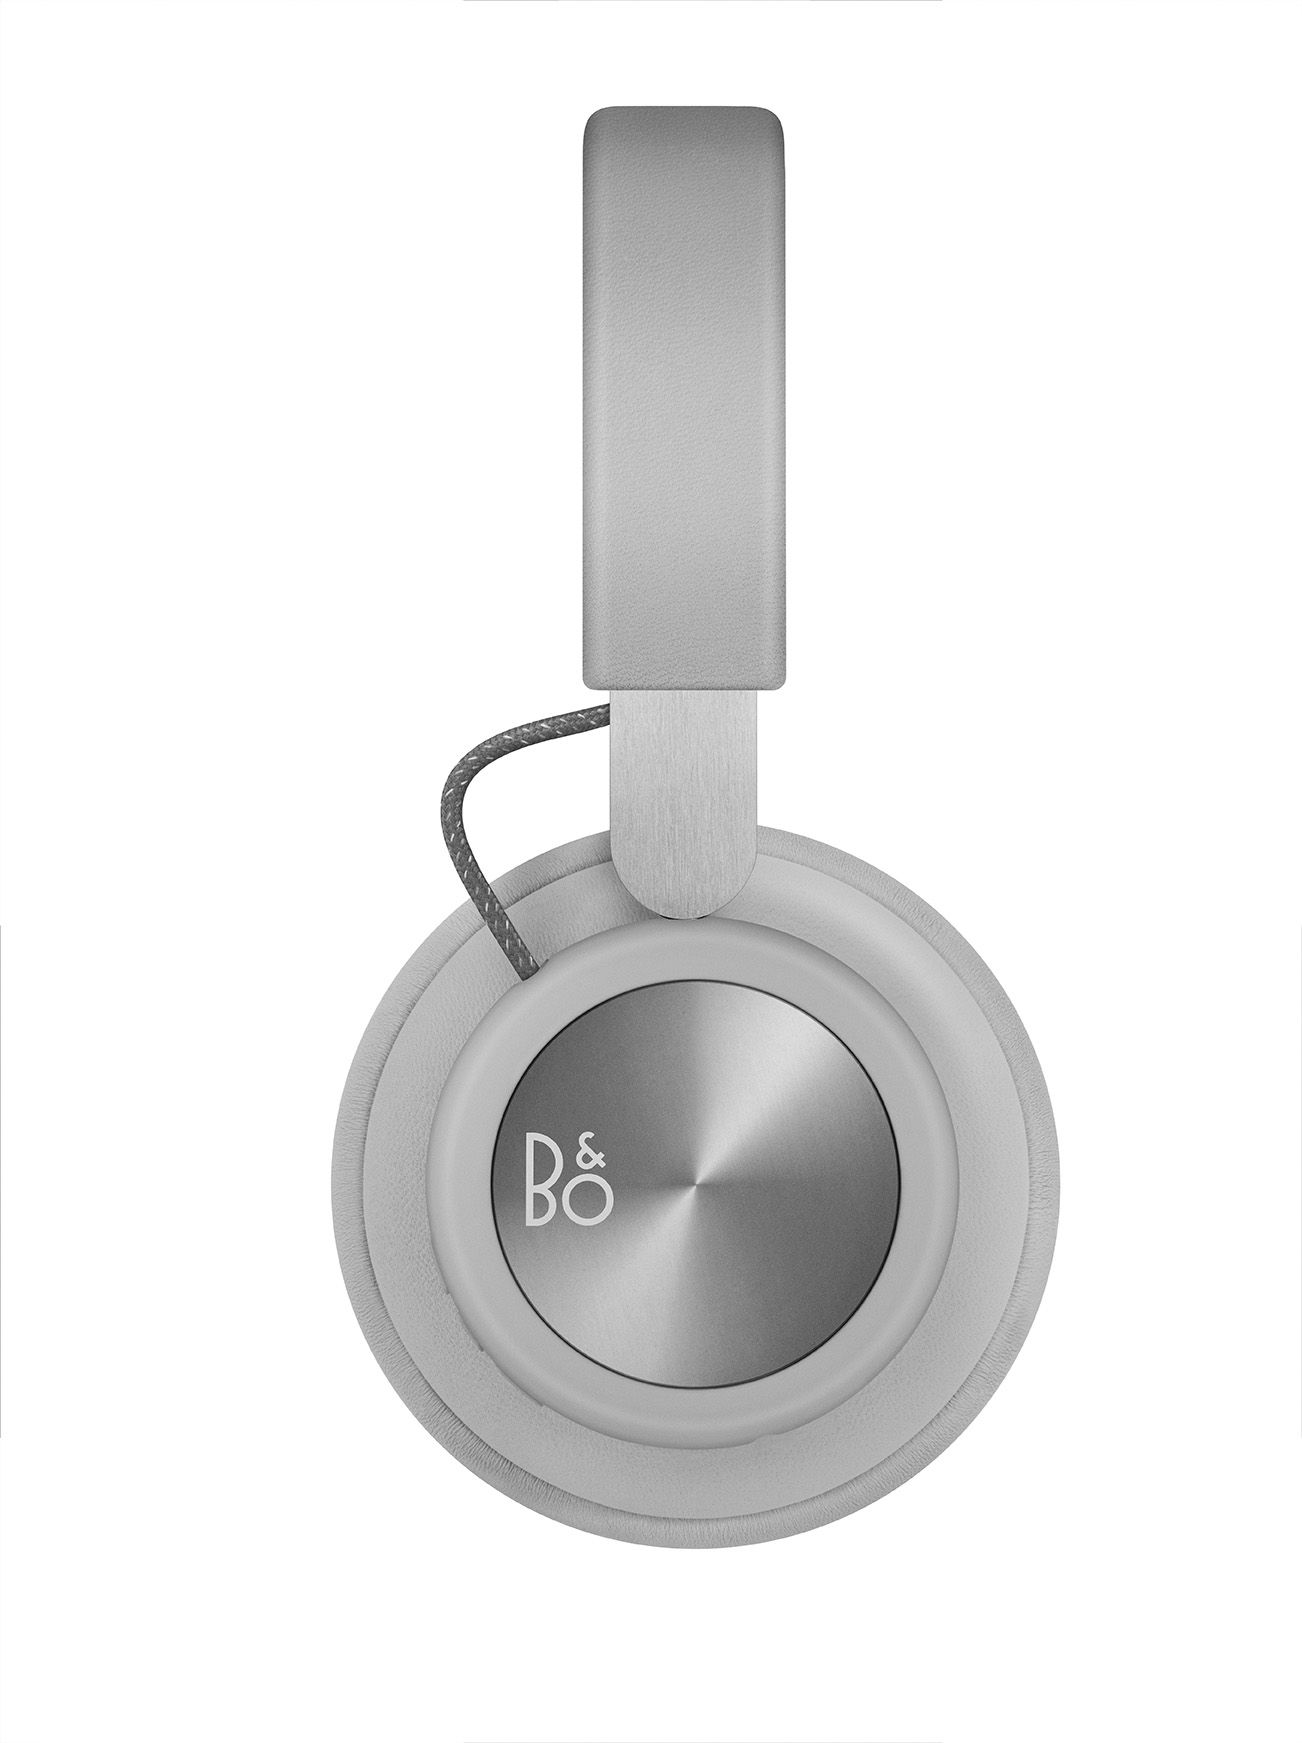 d8d39fc8d55 Beoplay H4 Vapour. Headphones from the B&O PLAY Autumn/Winter 2017 Fashion  Collection.